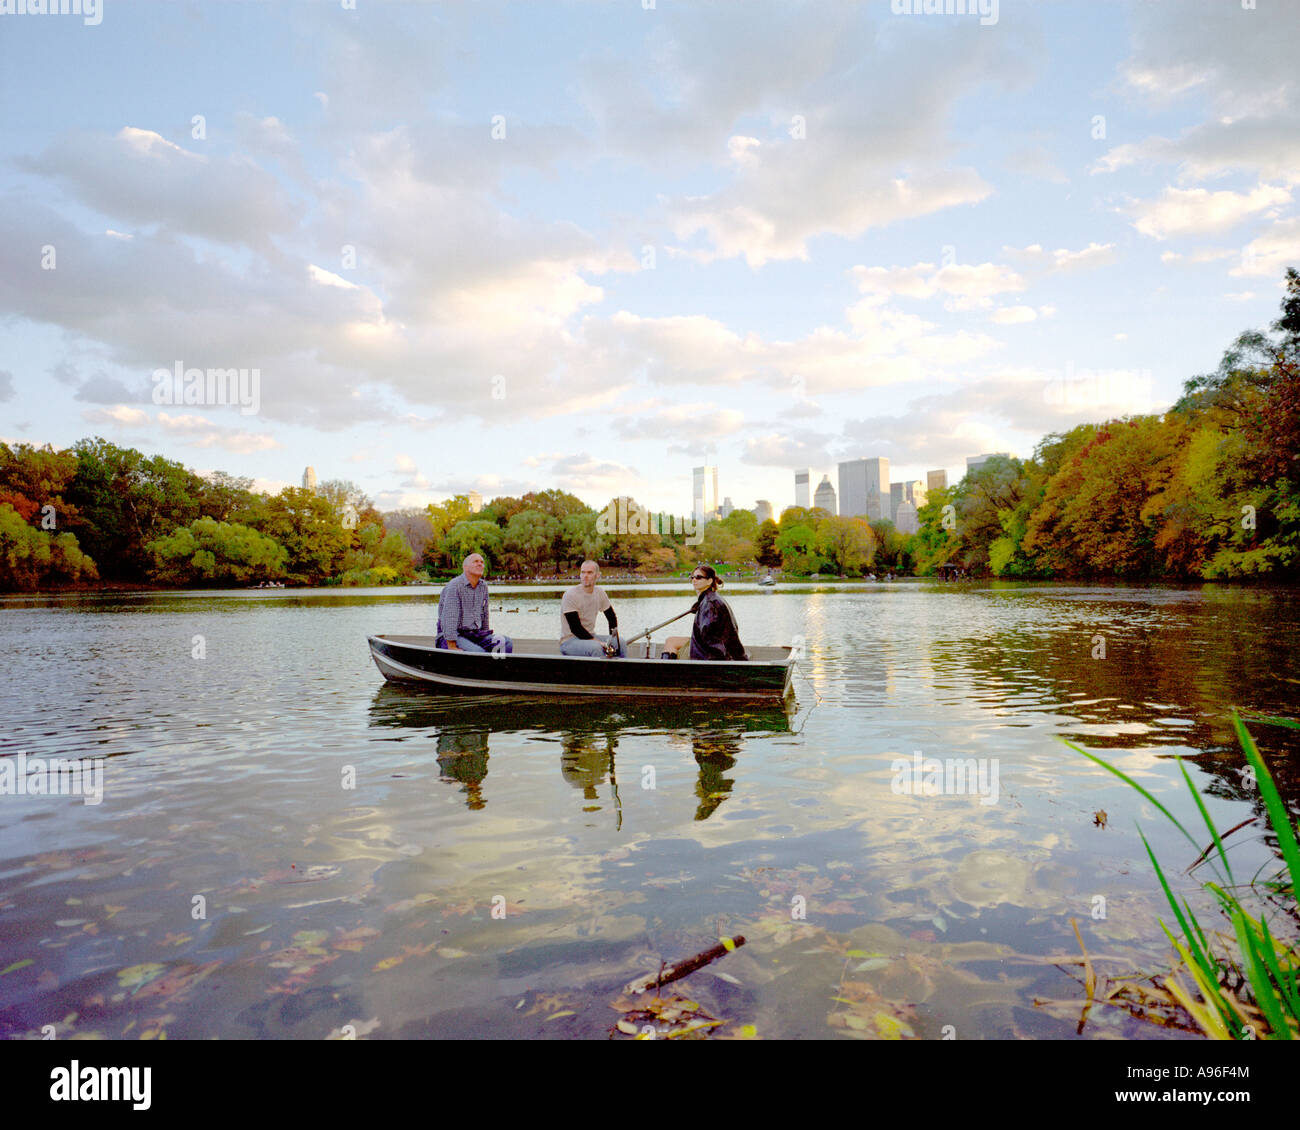 New Yorkers enjoy the early evening at a boating lake in Central Park New York, USA Stock Photo